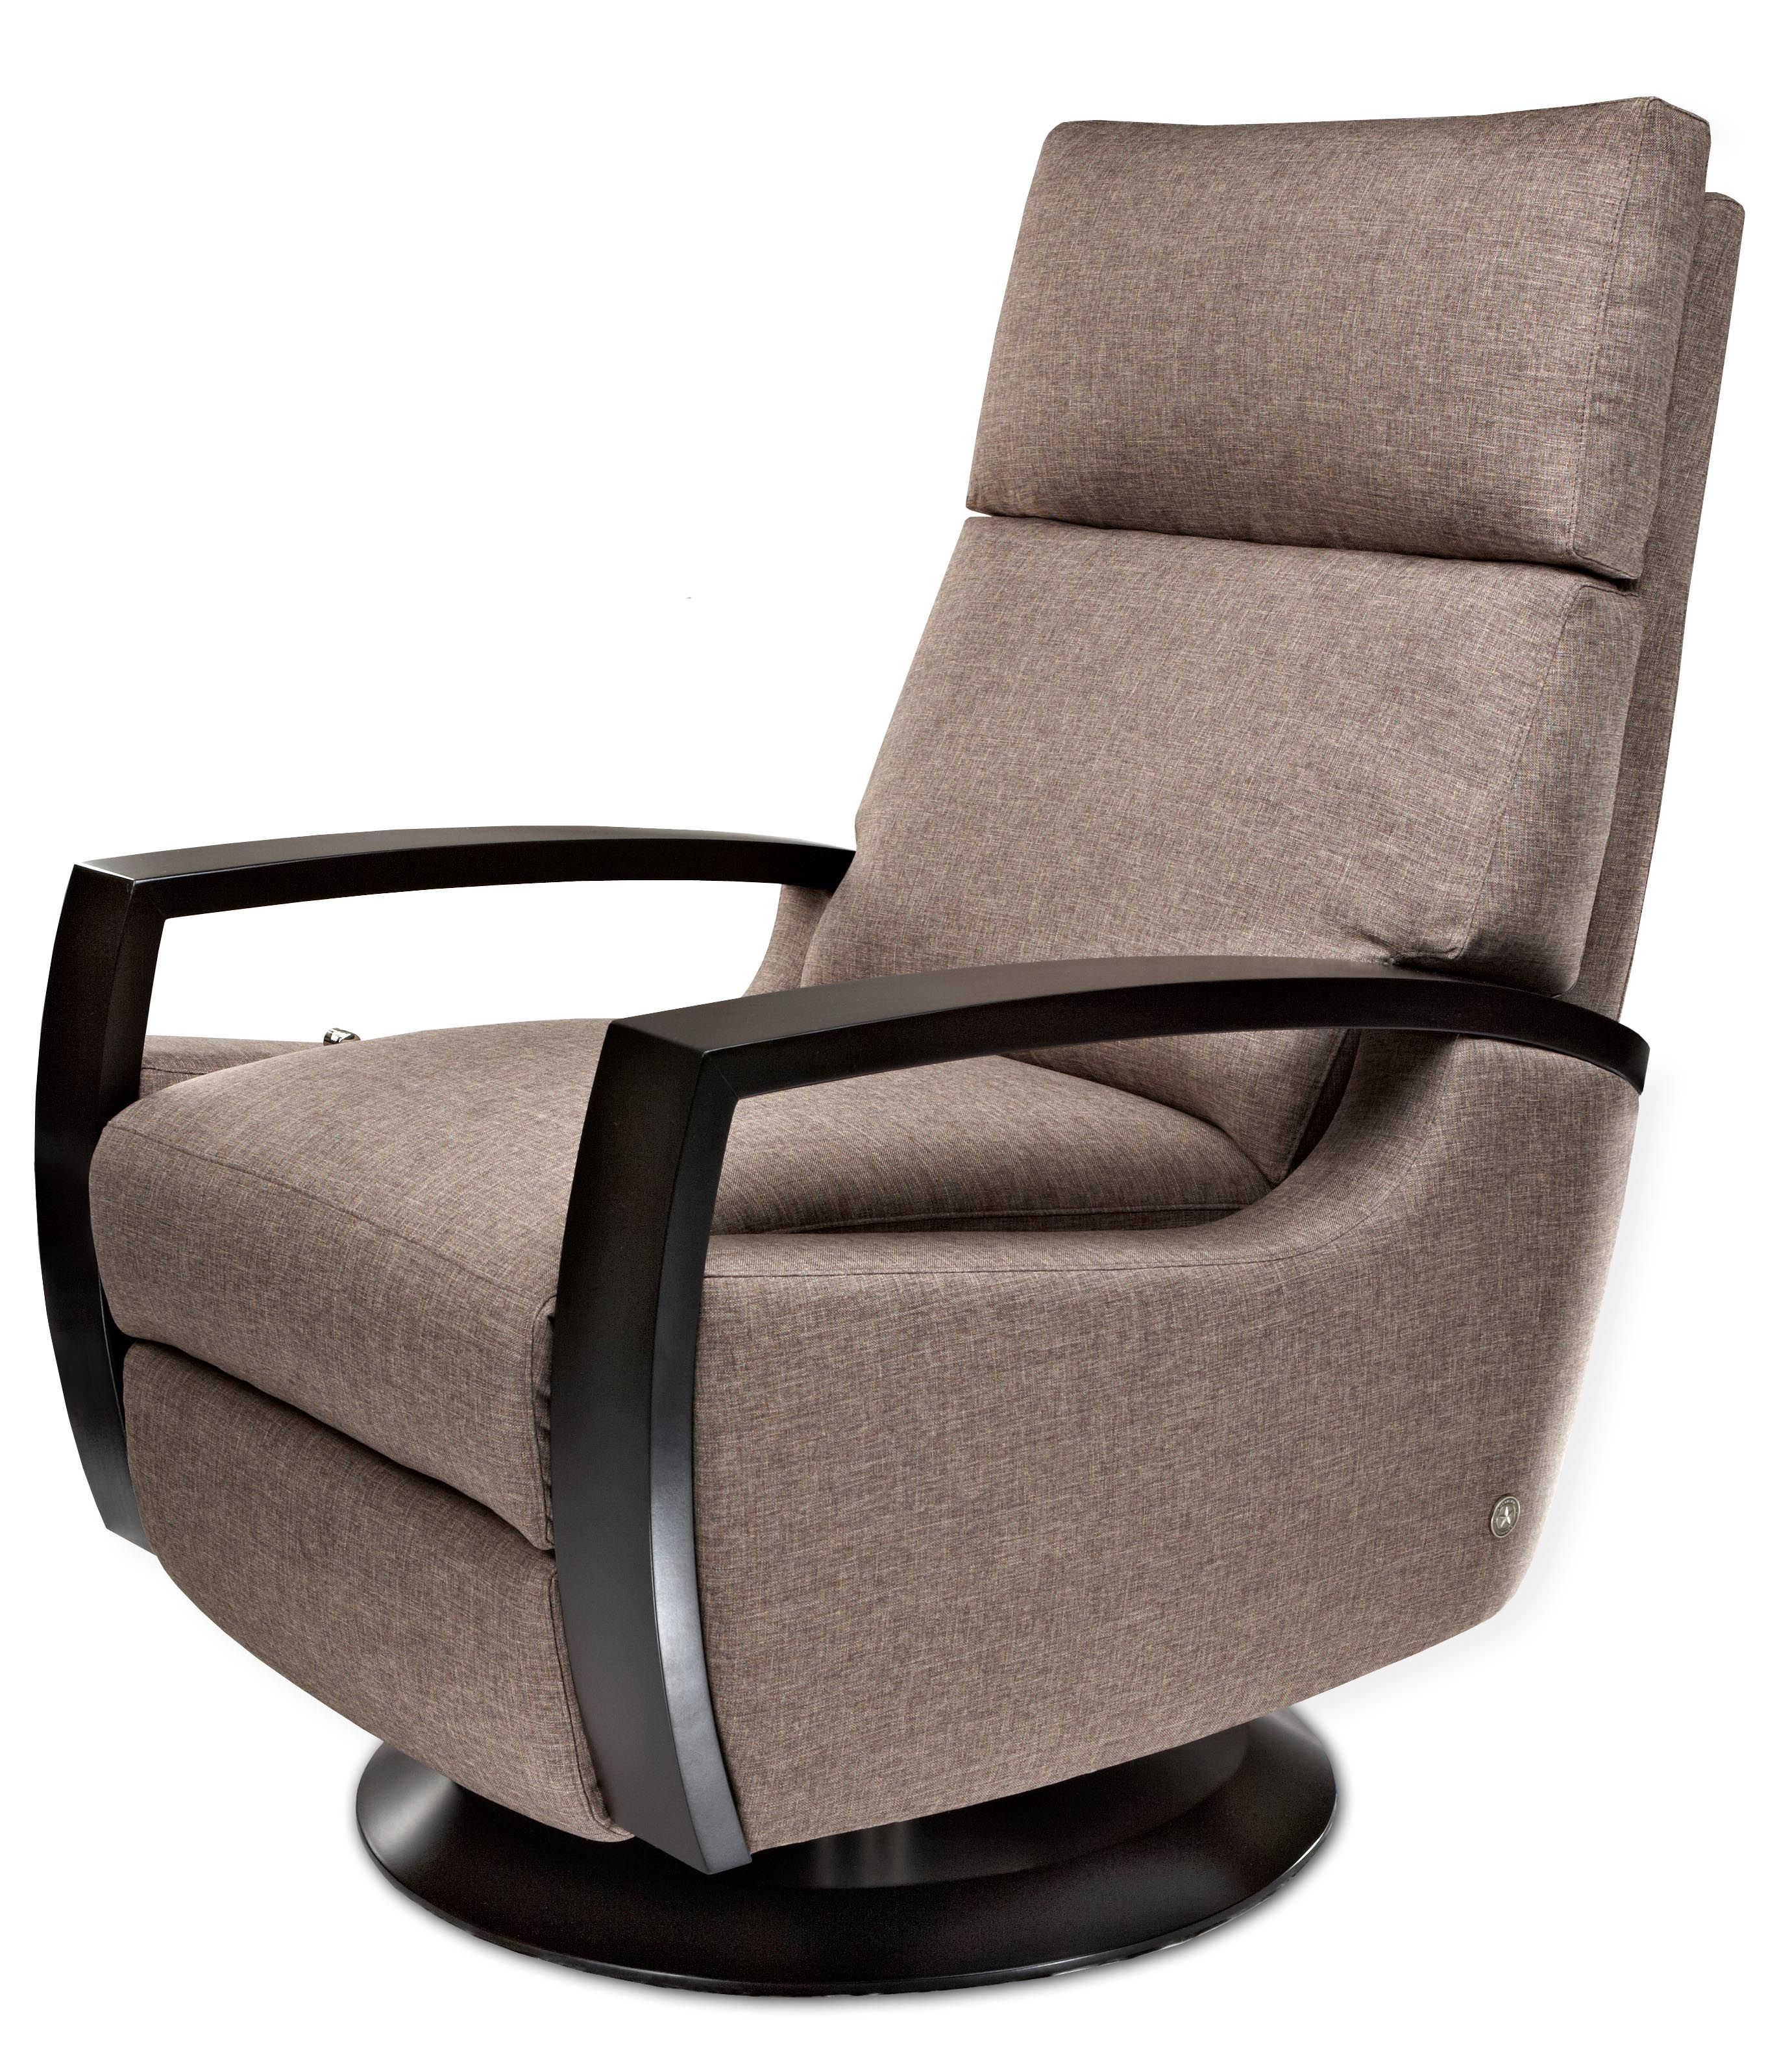 Fancy Swivel Recliner Chairs Design With Stylish Model Detail